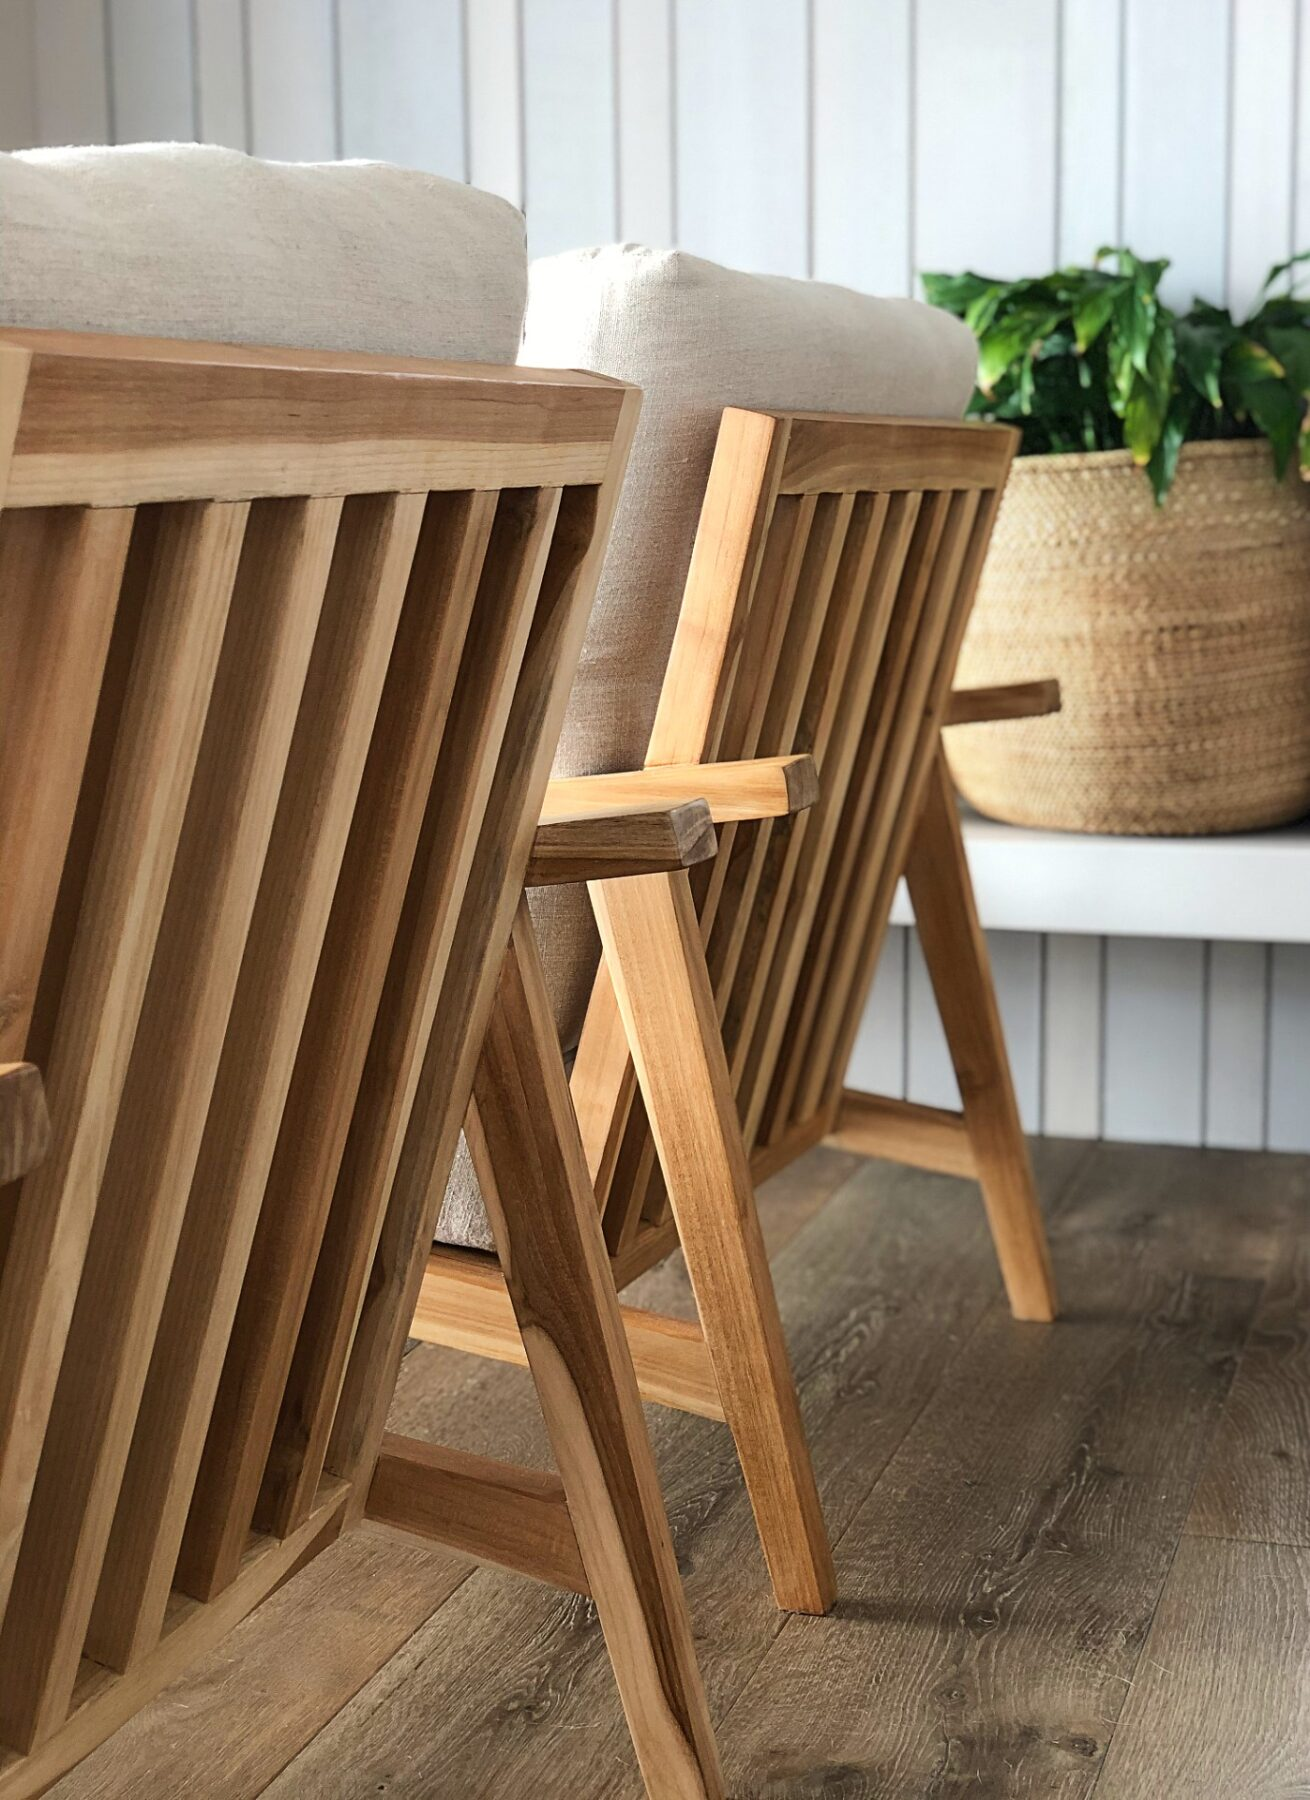 two decker chairs on wood floors